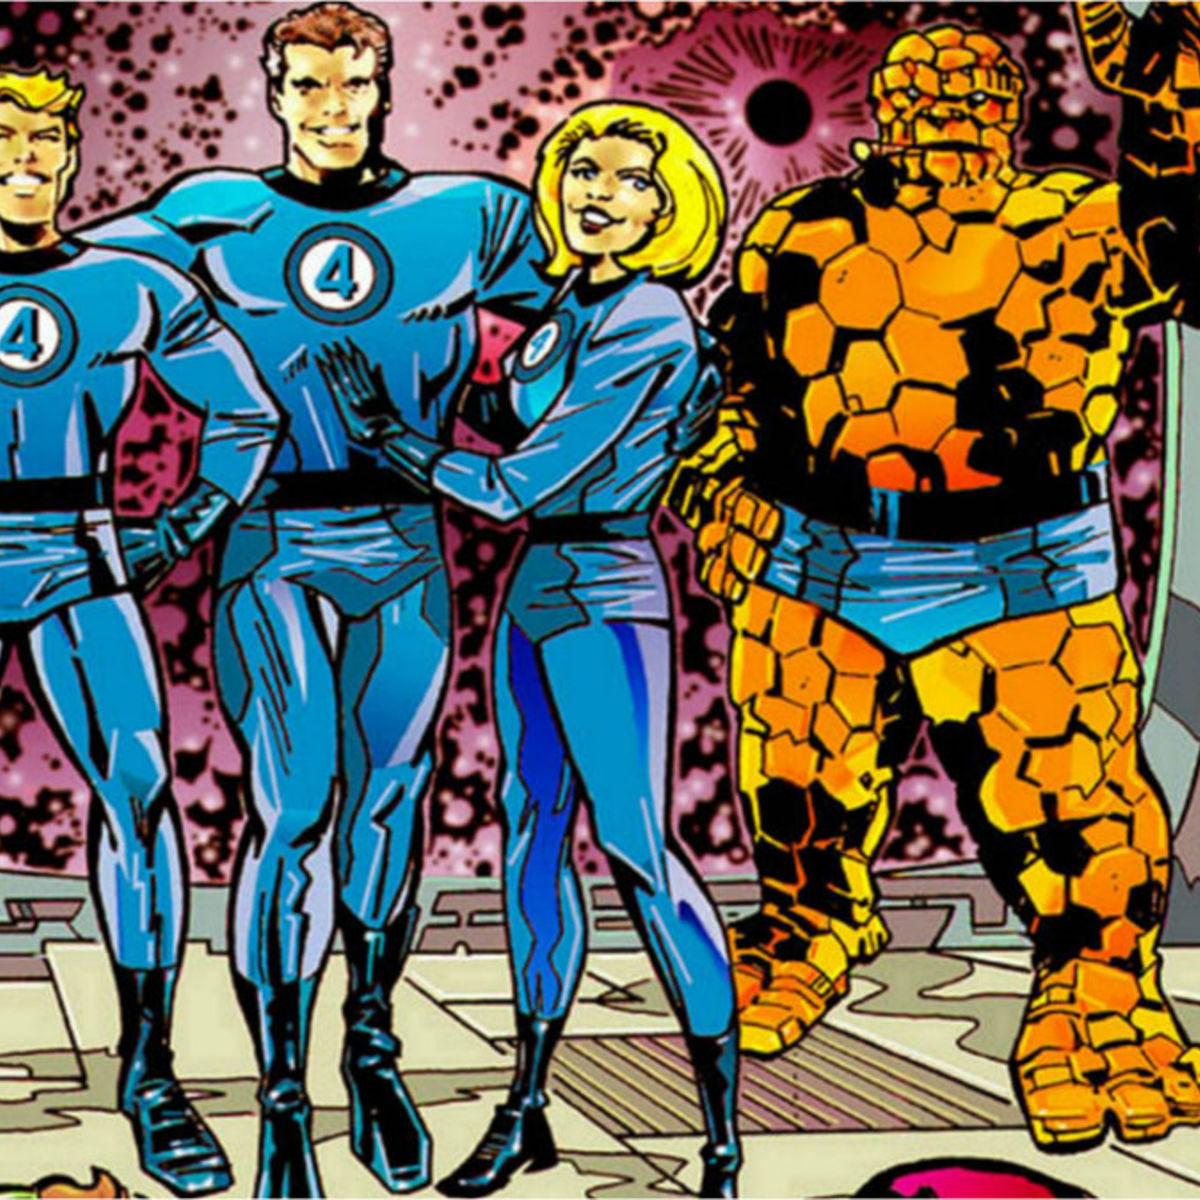 FantasticFourMarvelComics.jpg